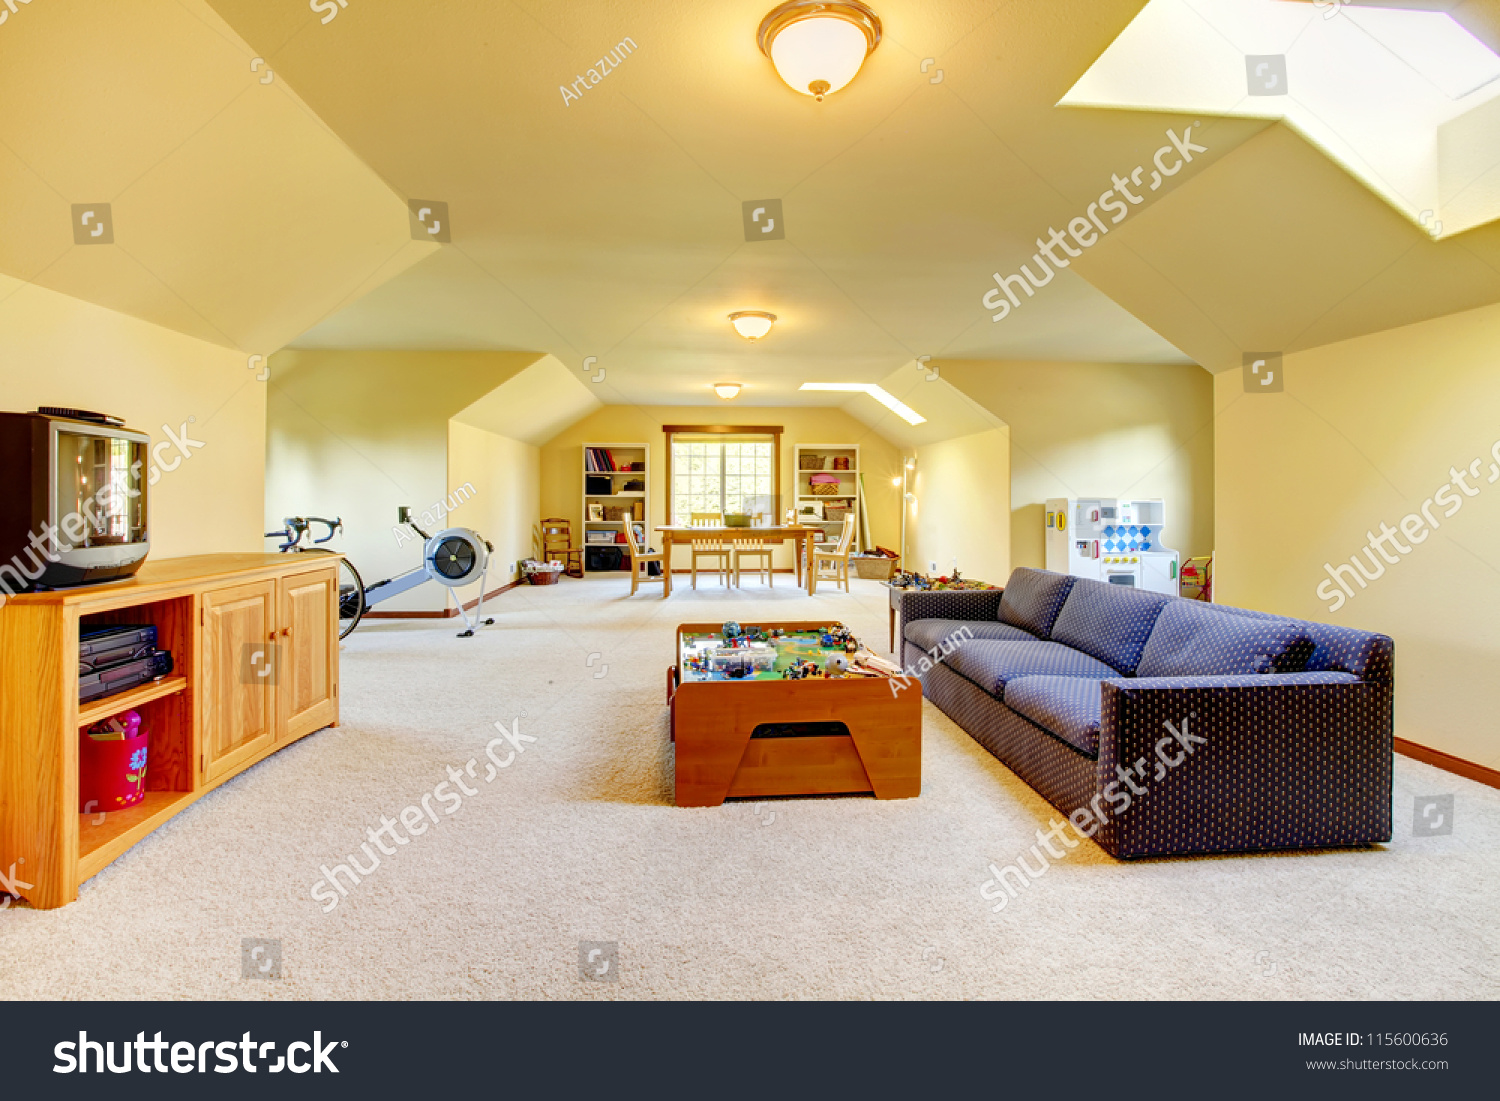 Large Play Room Tv Sport Games Stock Photo (Edit Now) 115600636 ...